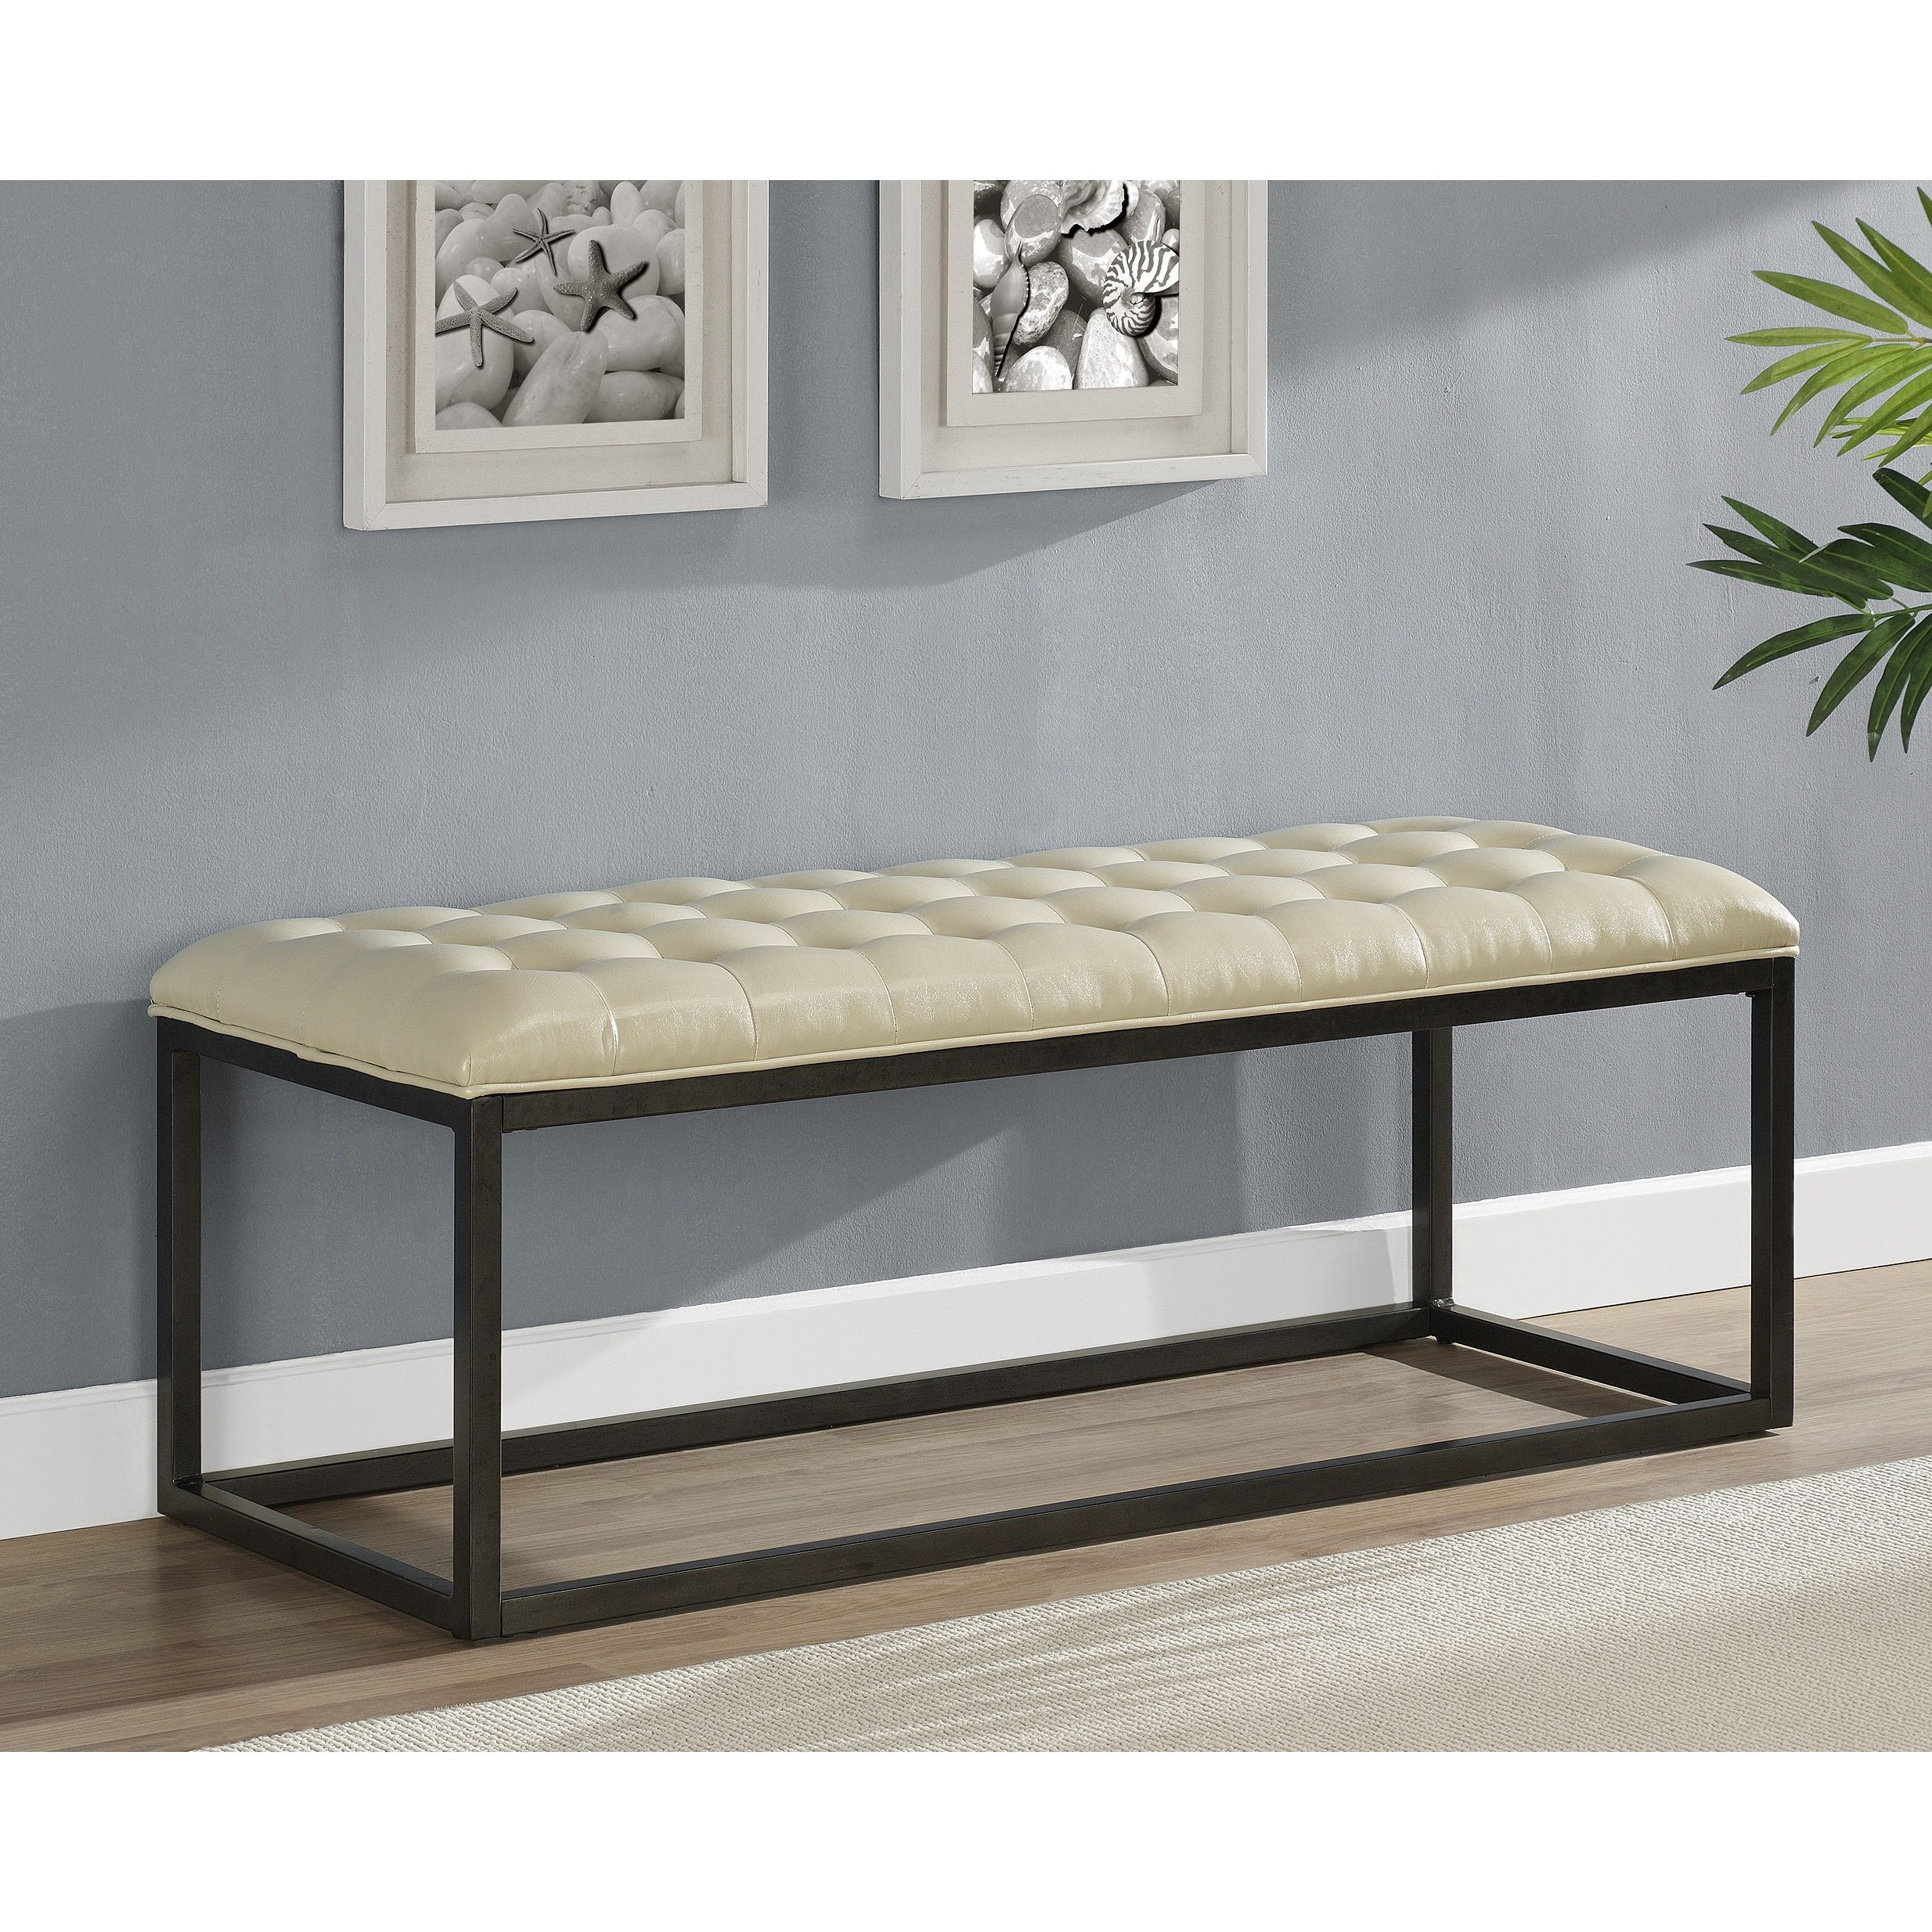 furniture hidden livings bedroom tufted for small white agreeable storage room cabinets seat design table bench living ideas livingroom benches with doors